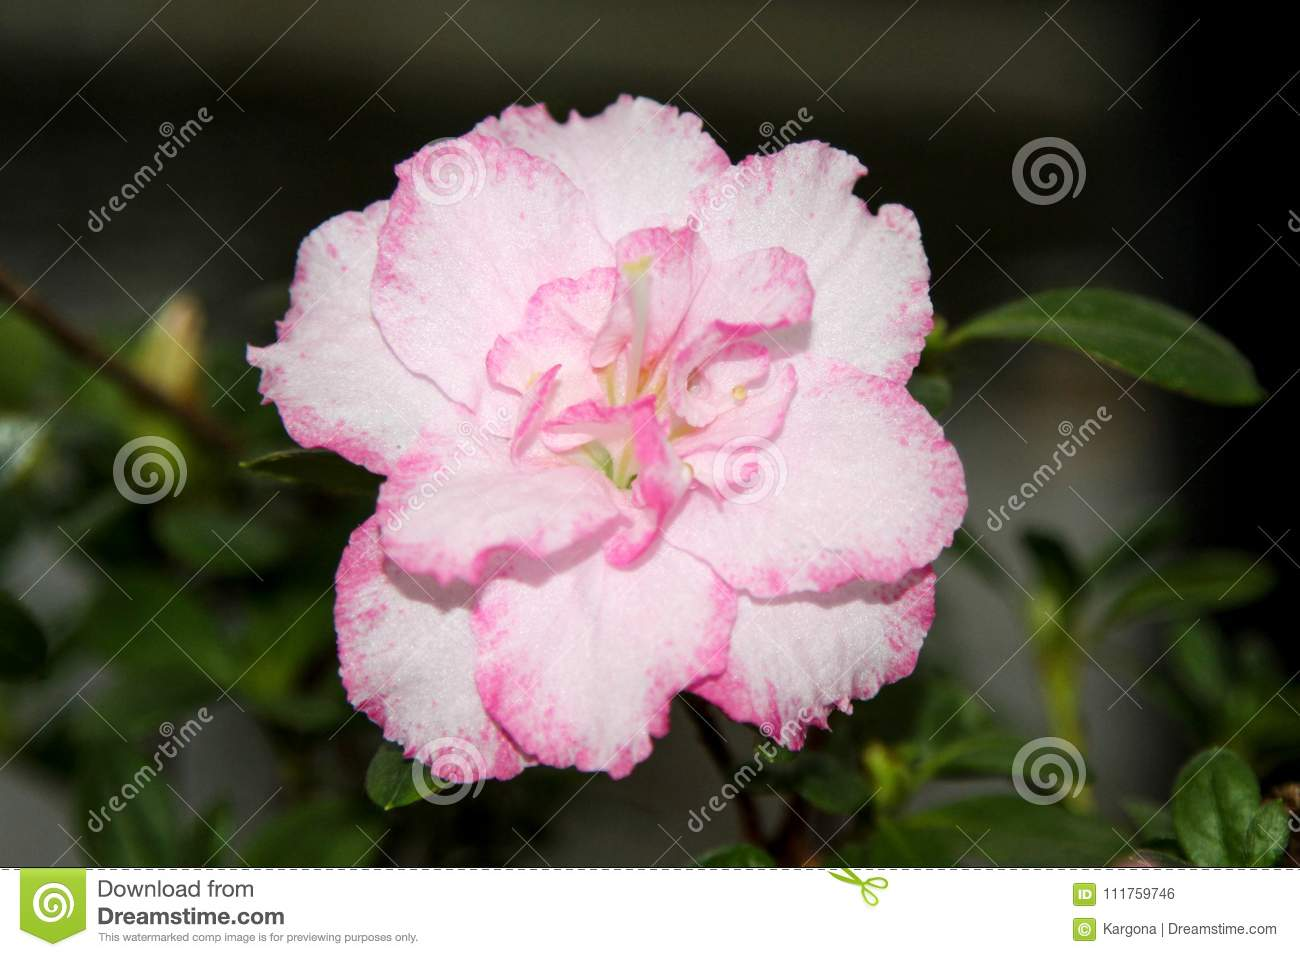 An Azalea Flower With White Petals With Pink Edges Stock Photo